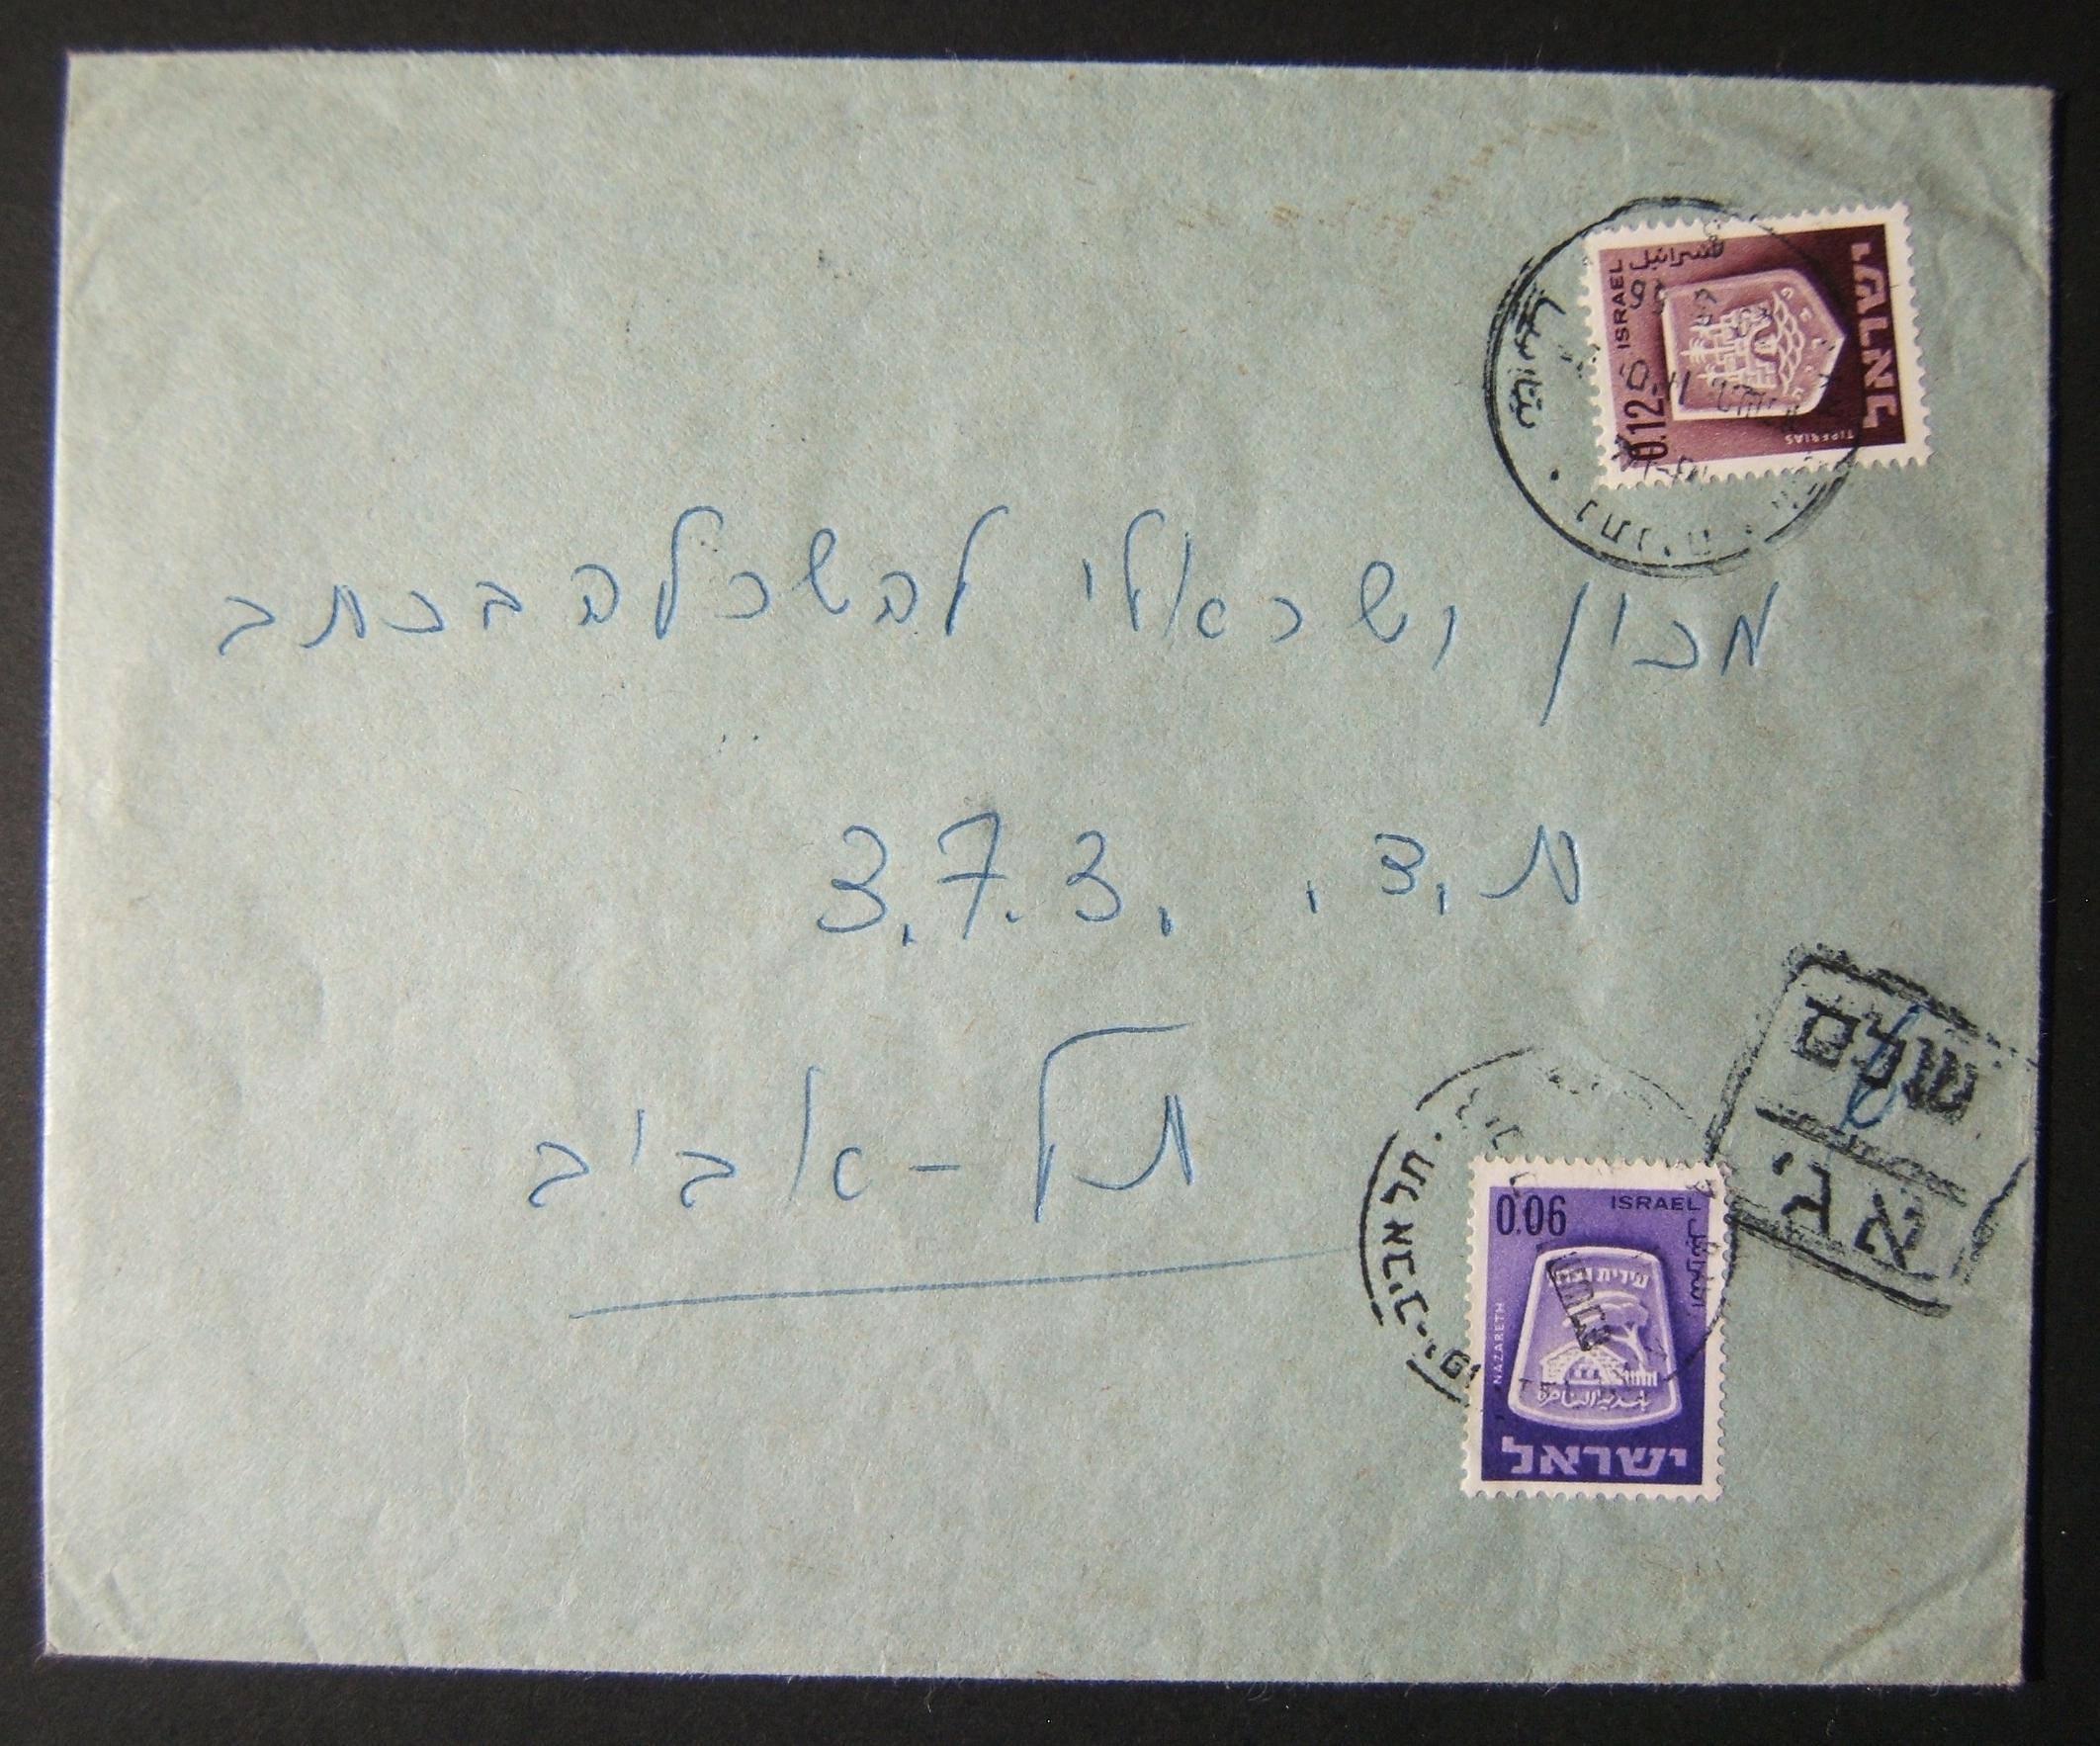 1966 DO-12 period domestic taxed mail: 29-5-66 commercial cover ex NETANYA to TLV franked 0.12L at the DO-12 period rate but taxed 6 Ag for additional weight, marked by scarce cach